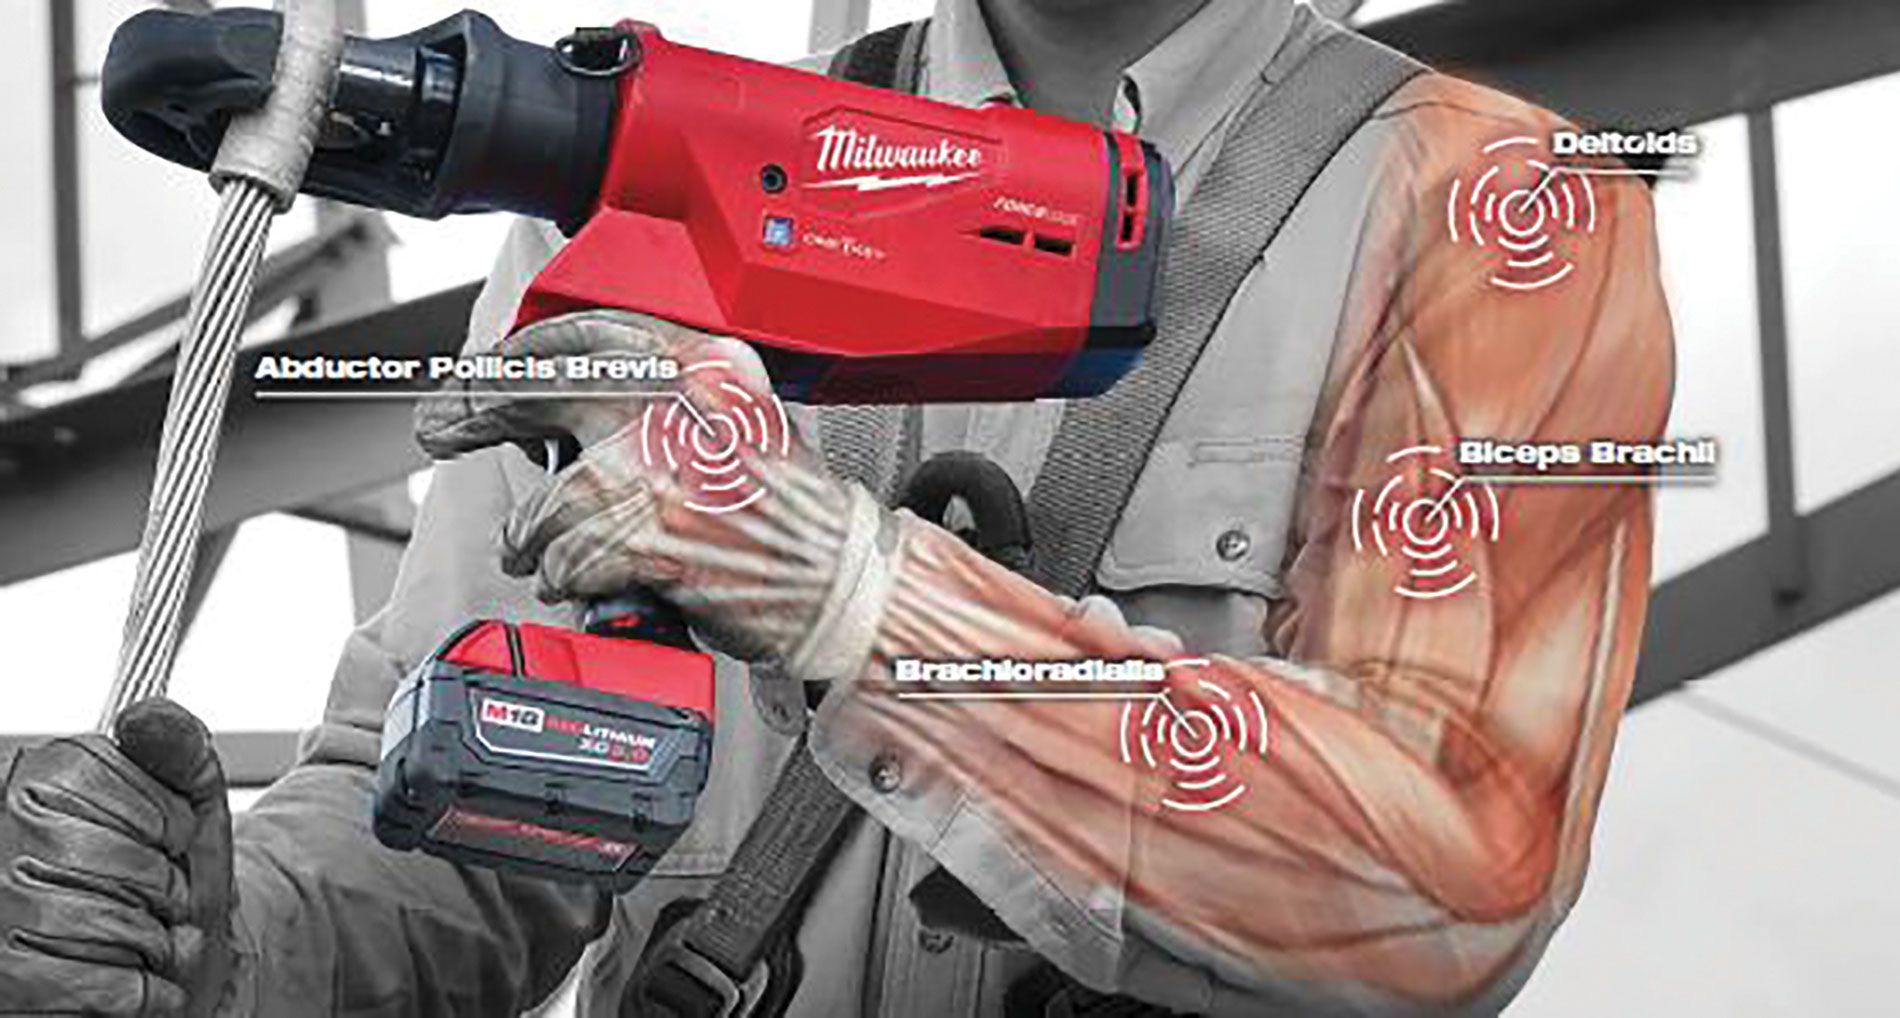 This Milwaukee illustration depicts muscles affected by power tool.